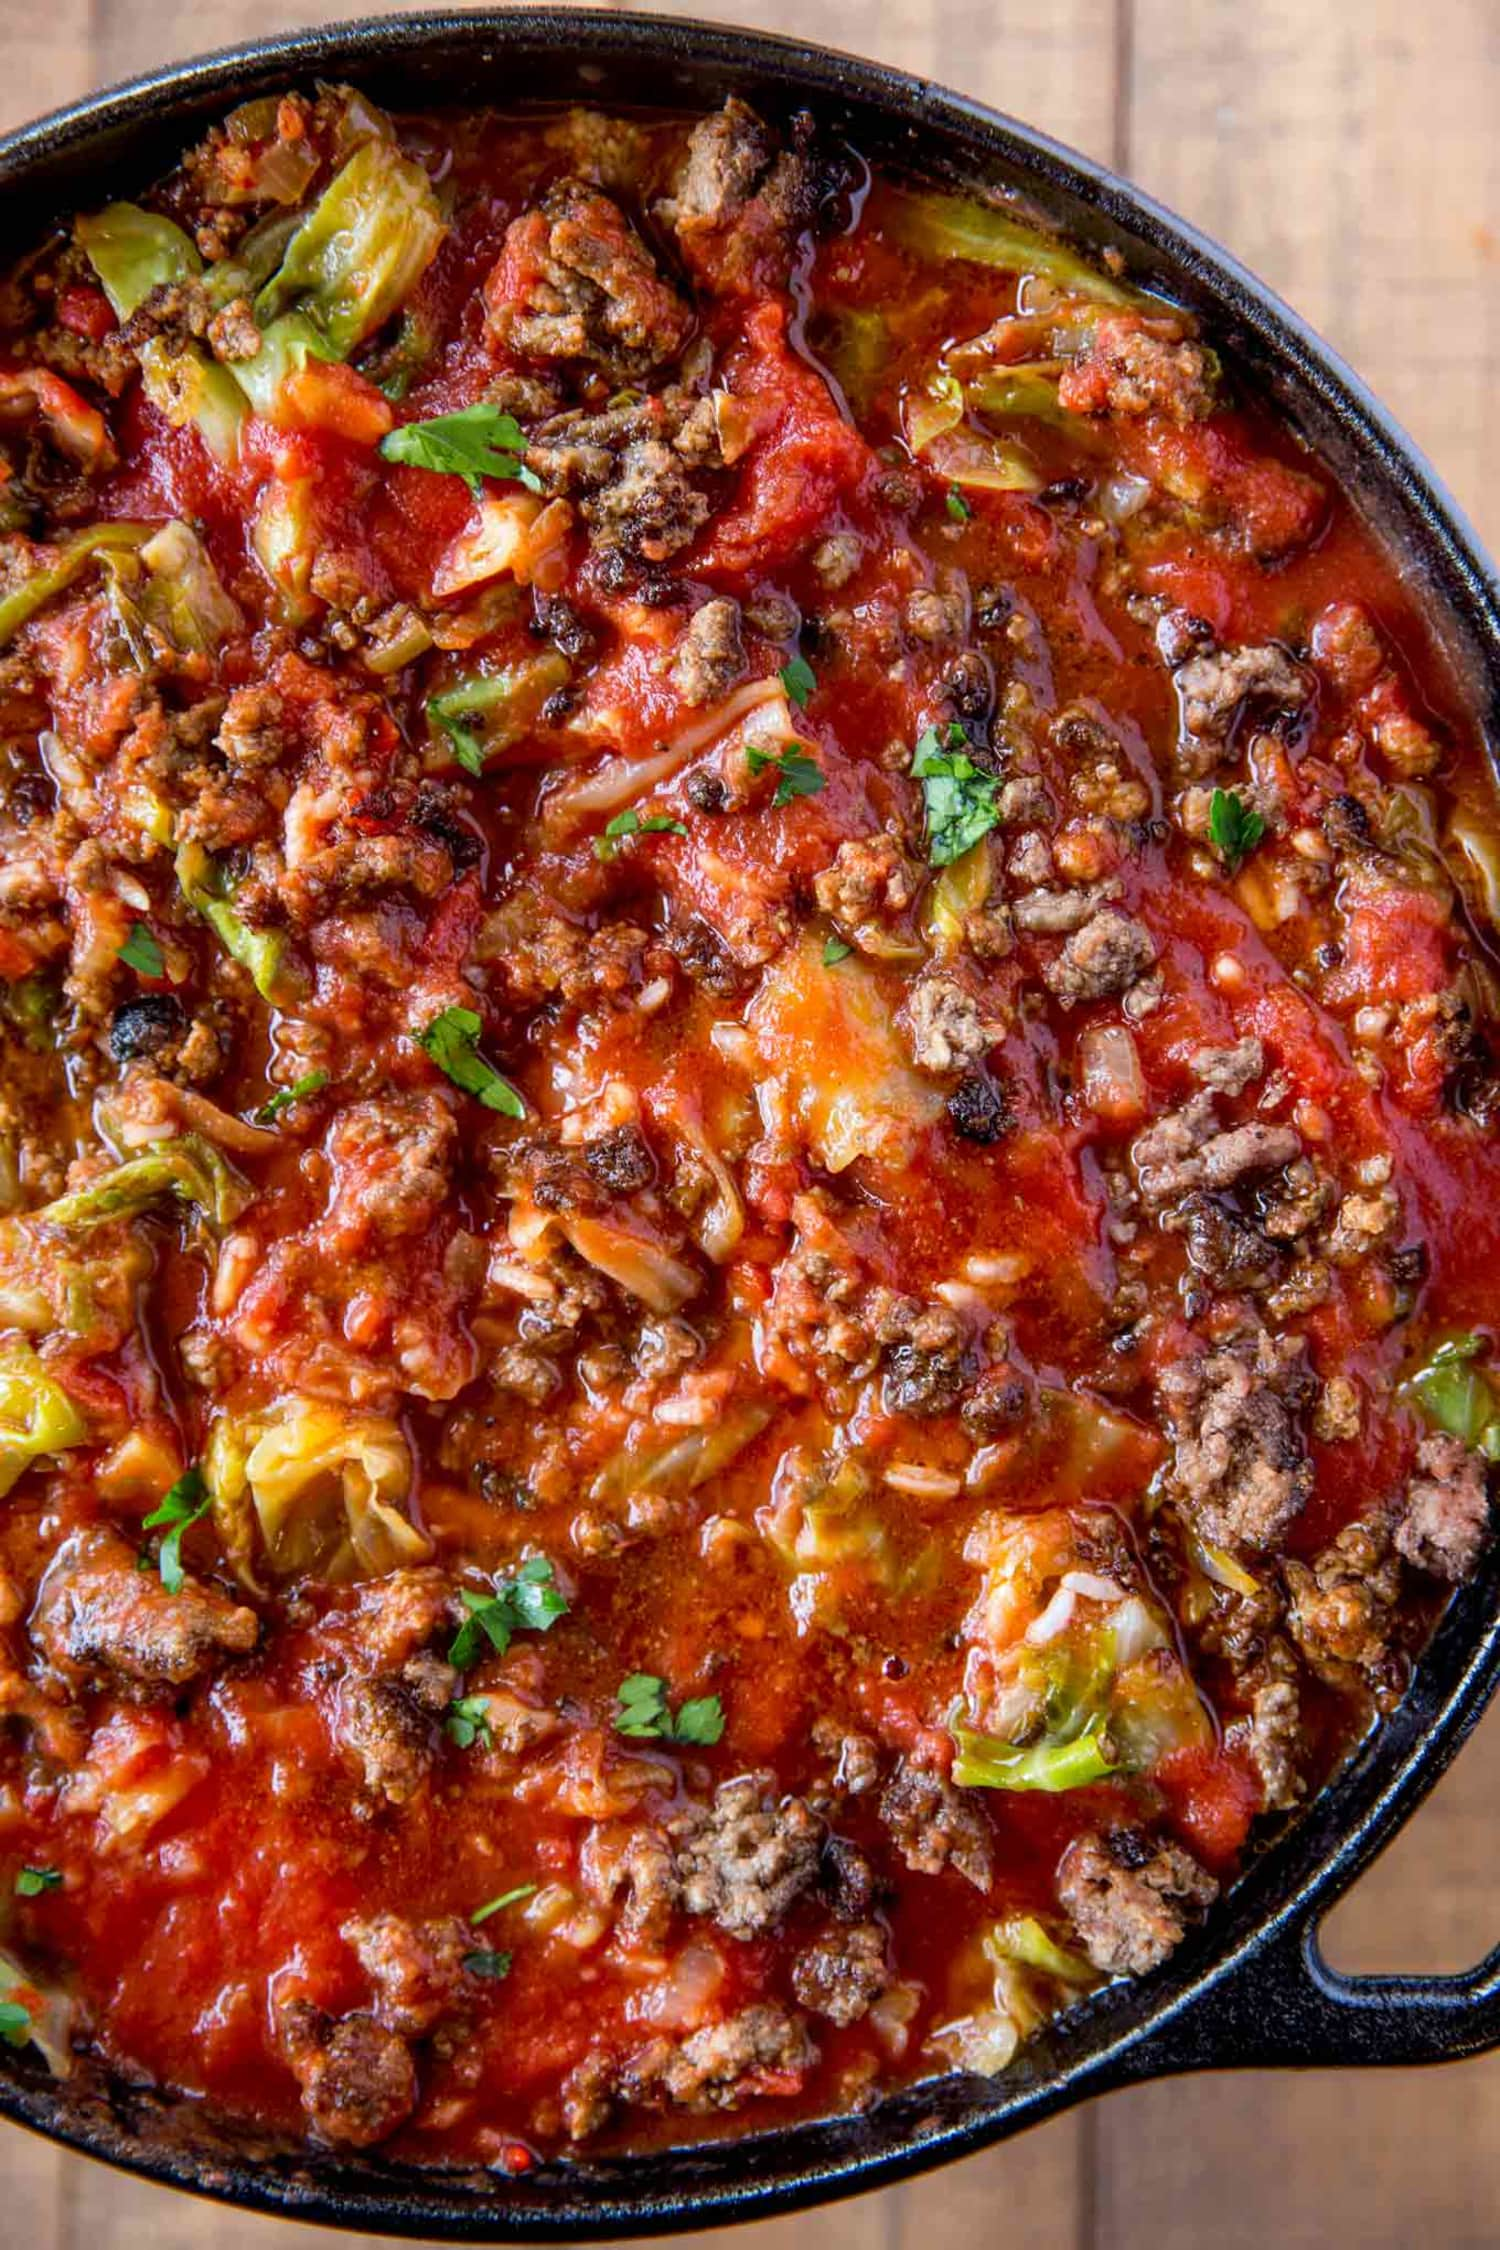 This Stuffed Cabbage Soup Is Comfort in a Bowl